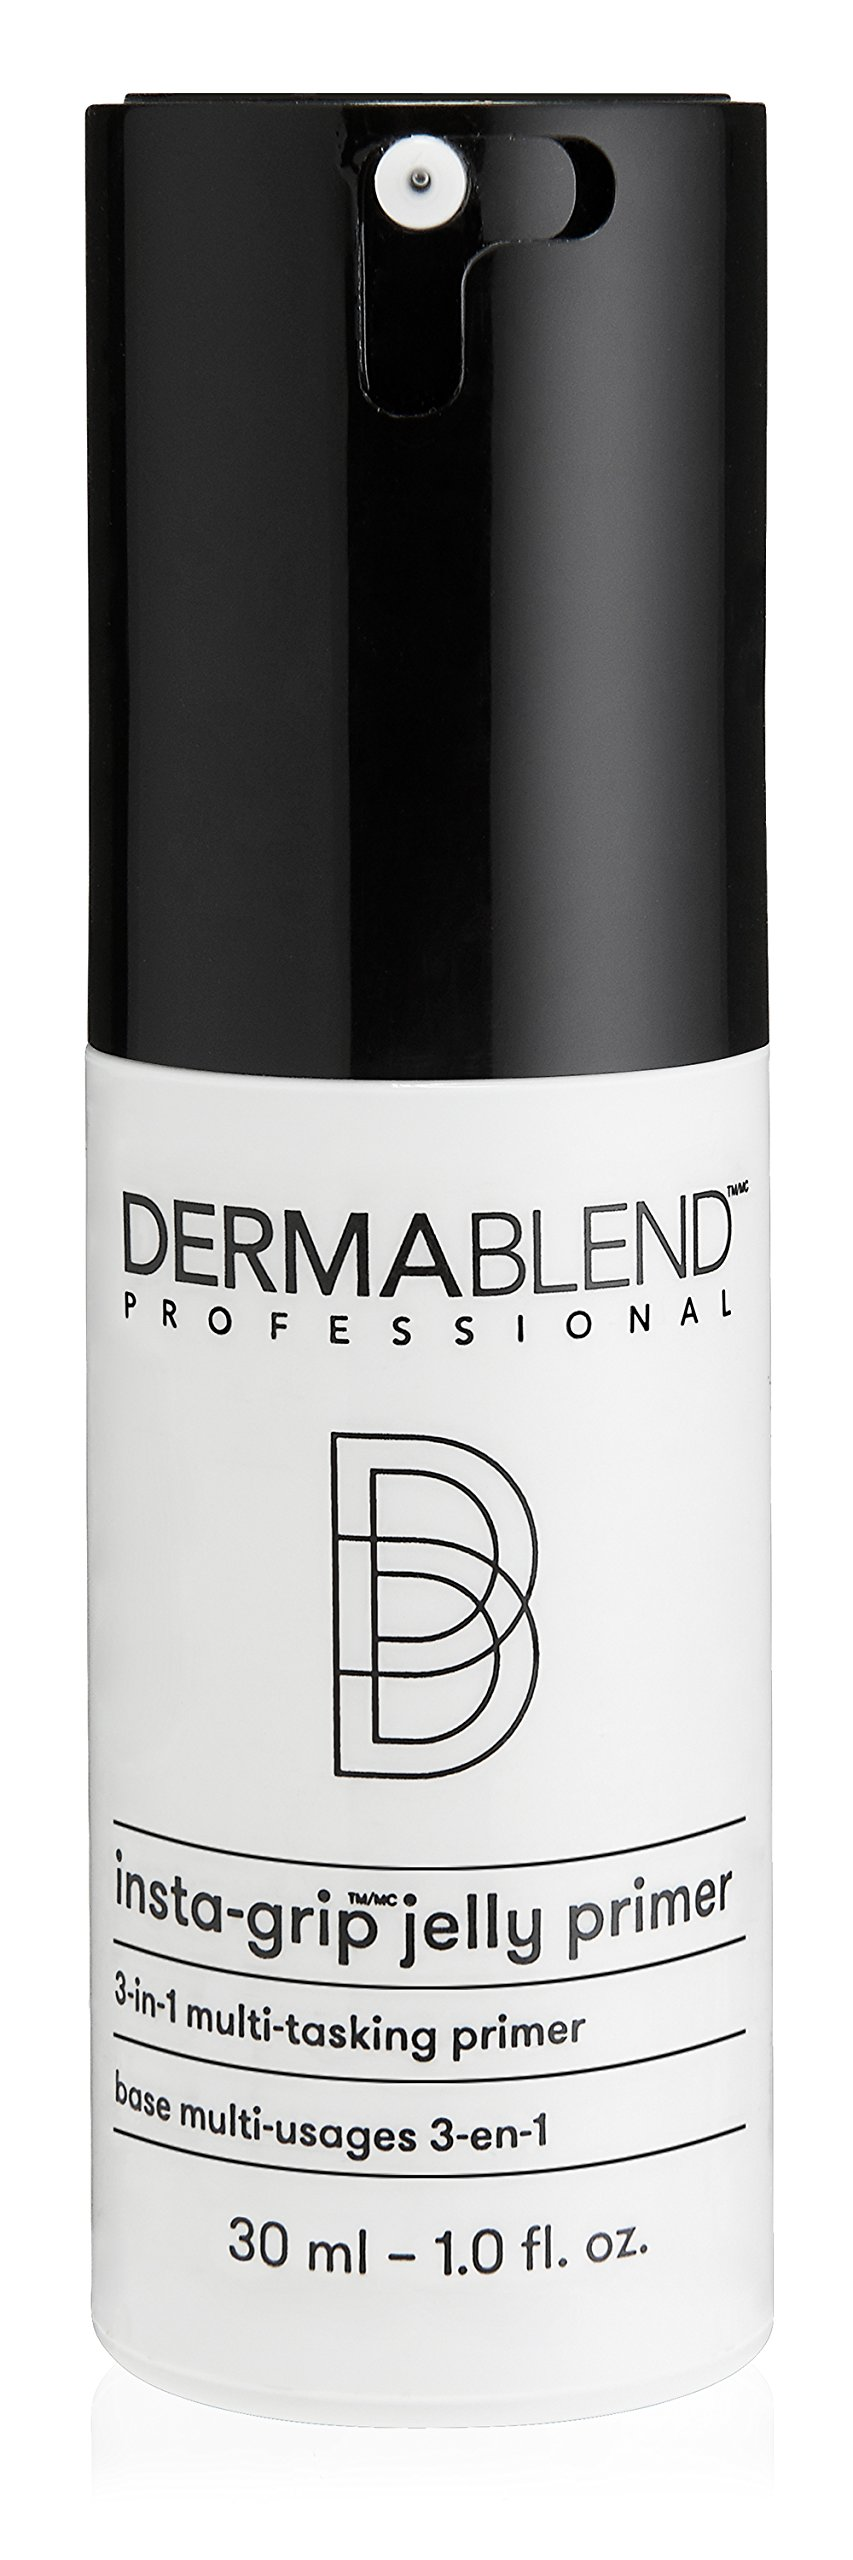 Dermablend Insta-Grip Jelly Primer Face Makeup, Hydrating Silicone-Free Primer for Dry Skin, 1.0 Fl Oz. by Dermablend